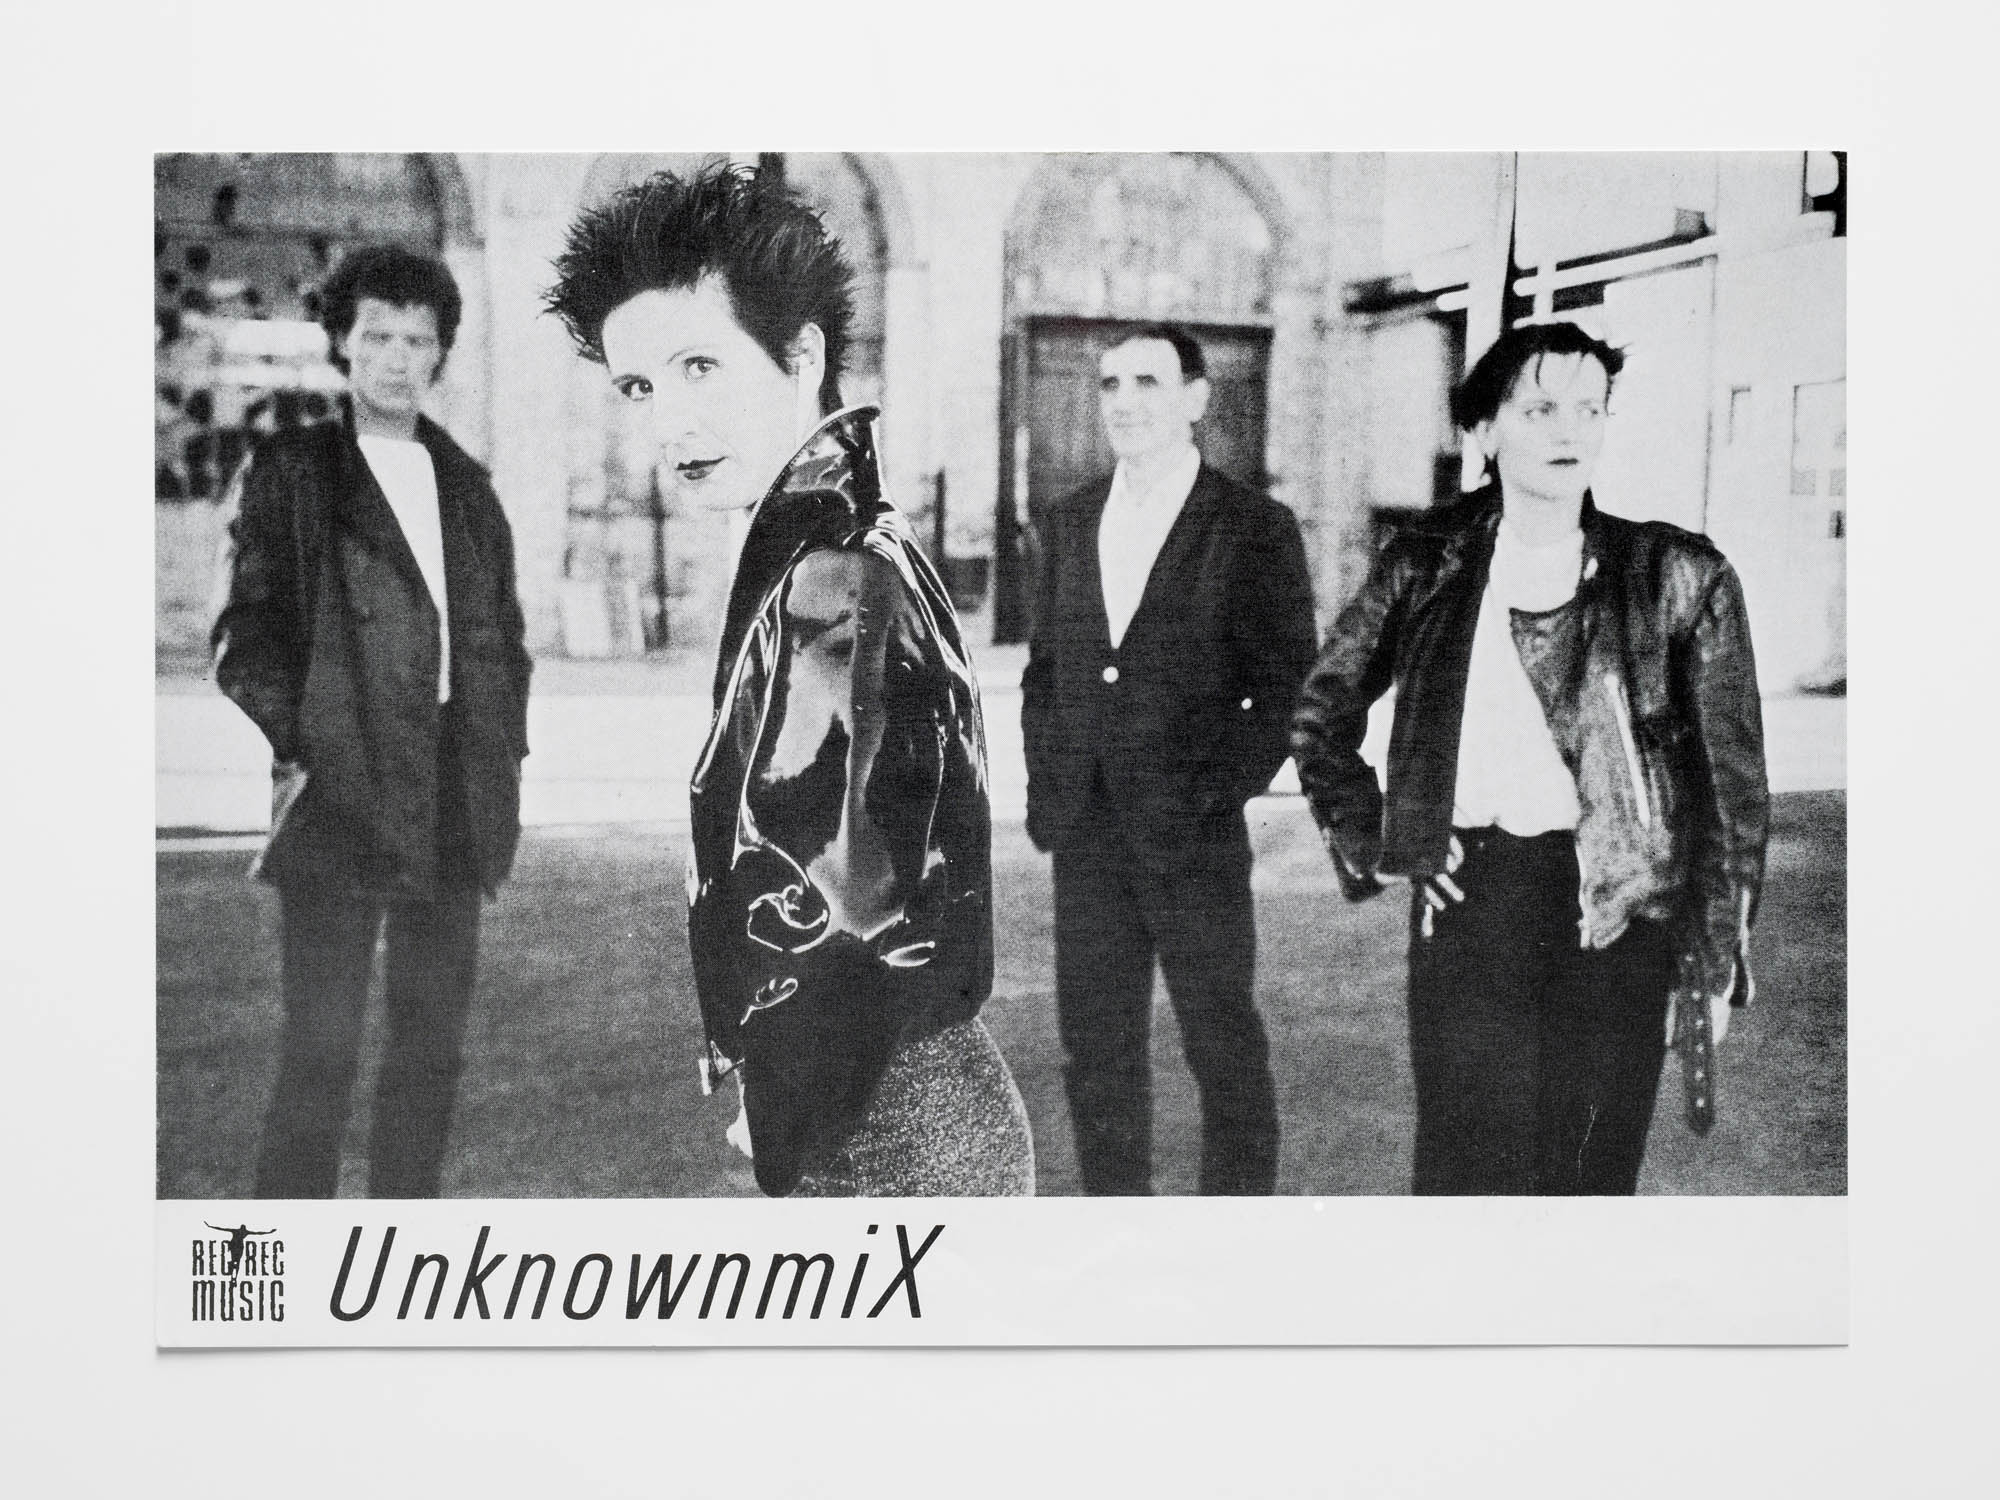 Unknownmix – UX Hans-Rudolf Lutz Record sleeve (front and back)